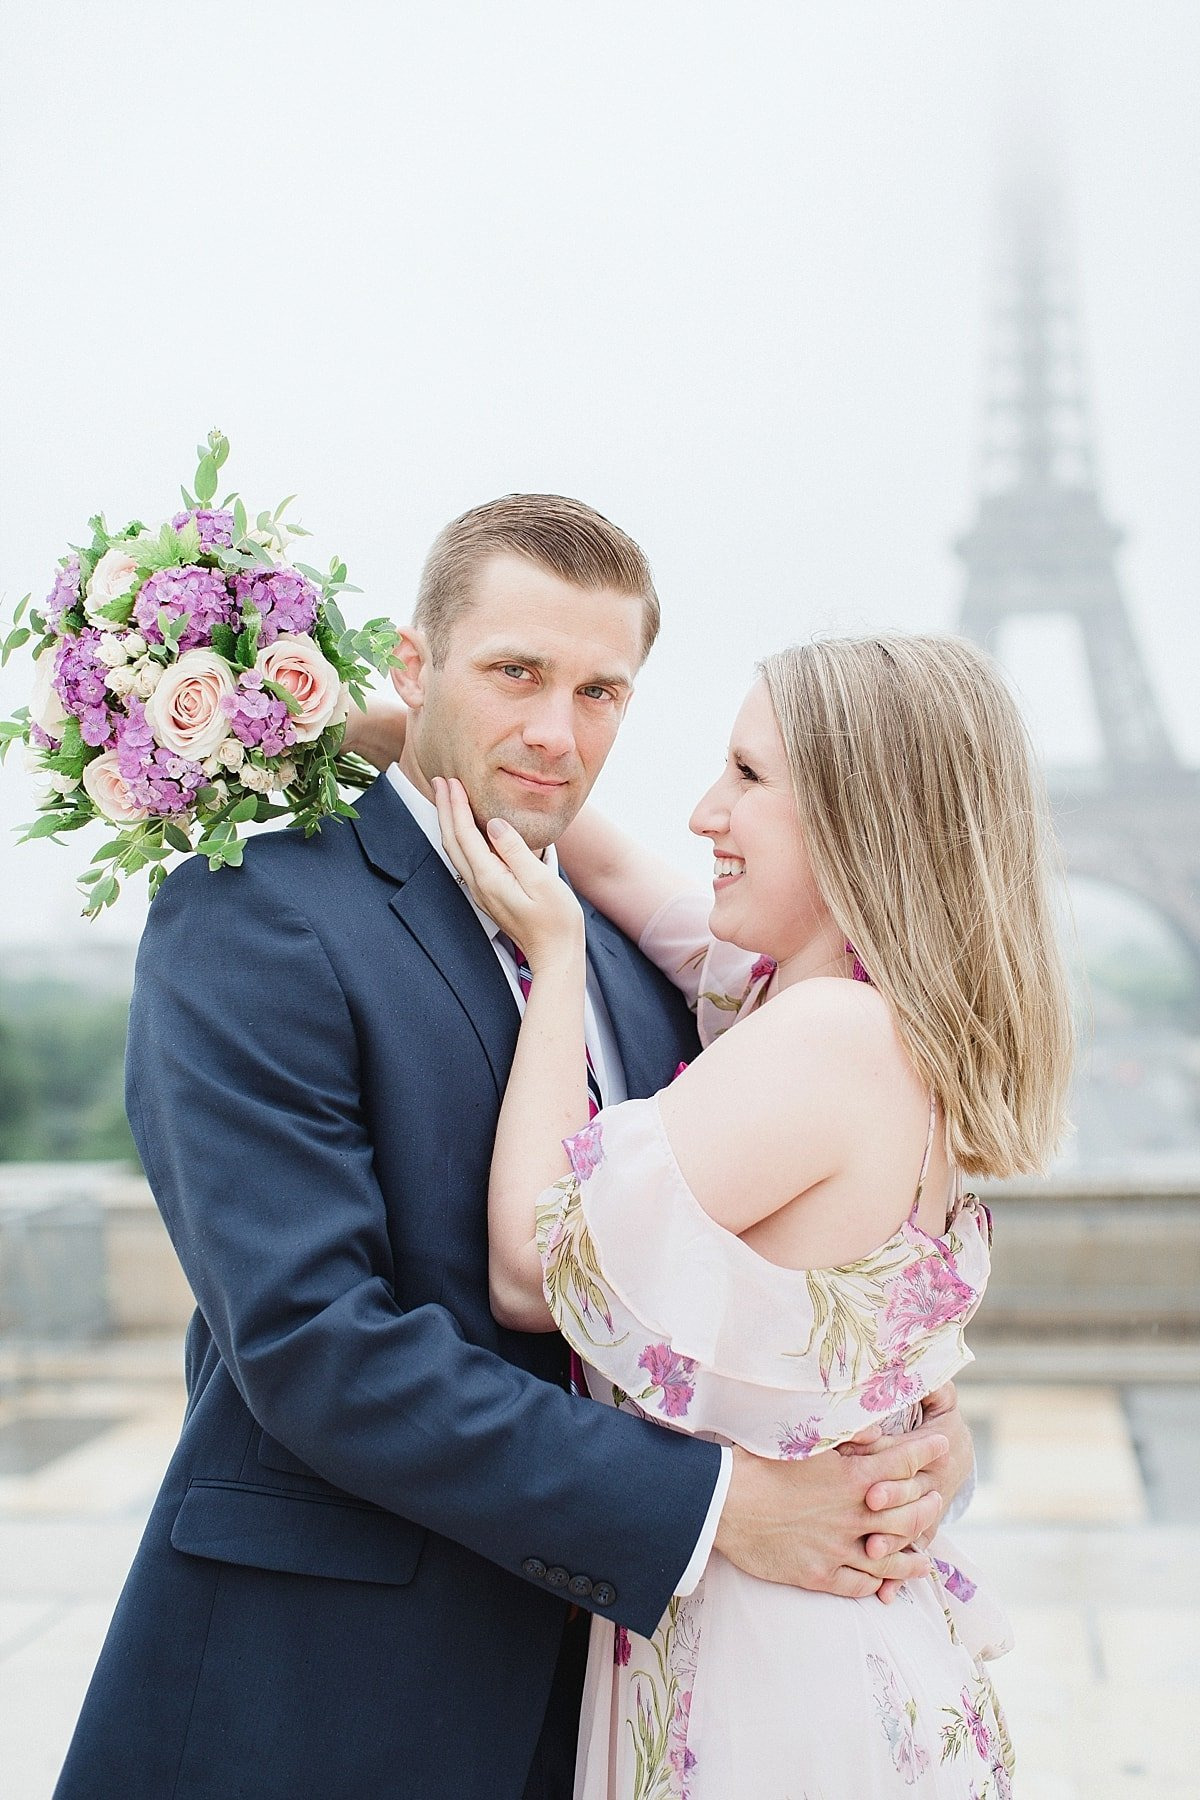 paris-photo-session-anniversary-alicia-yarrish-photography_07